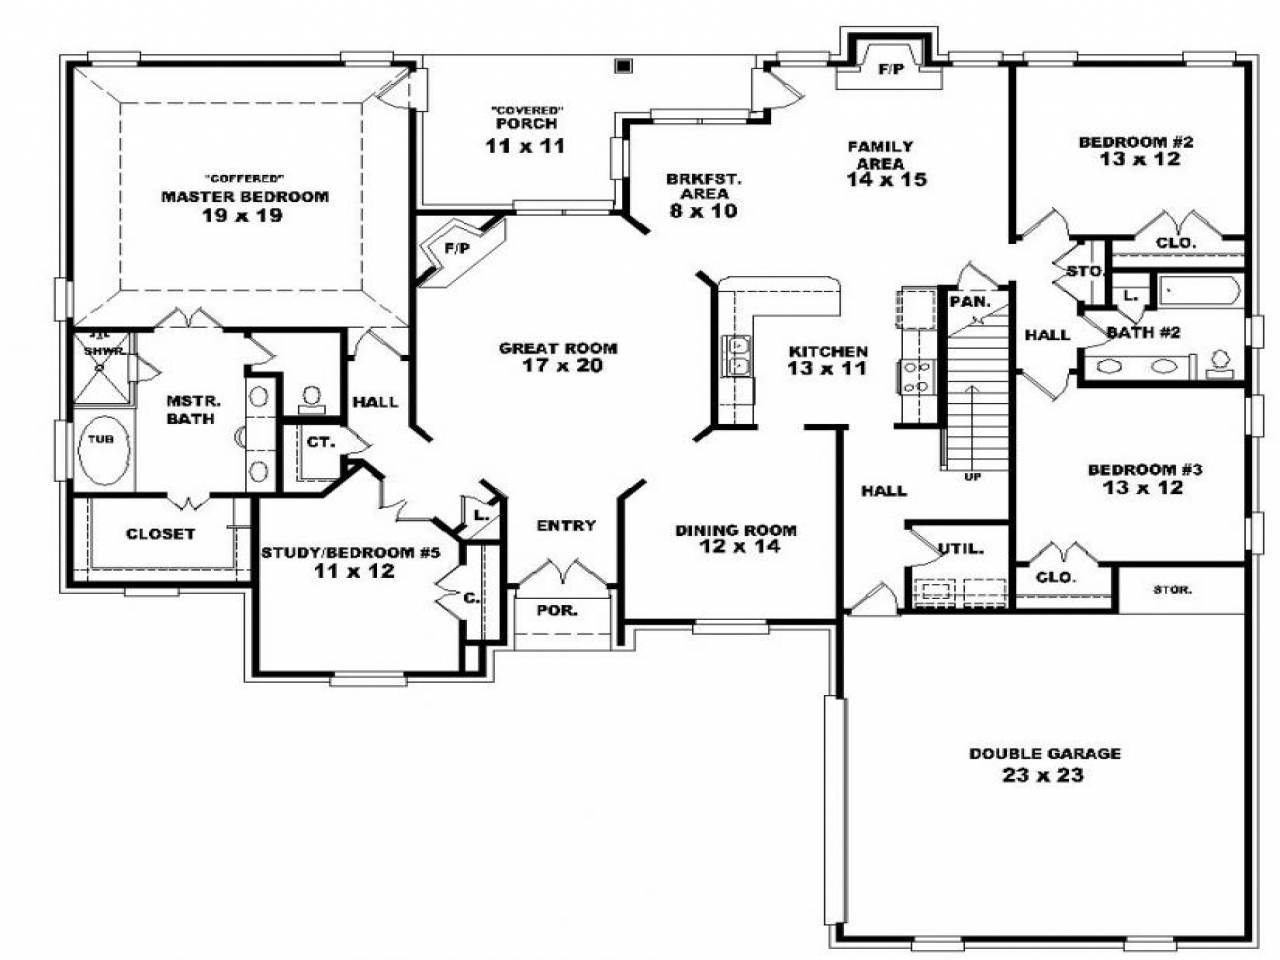 4 bedroom 2 story house plans story 3 bedroom with for 3 bedroom house plans one story